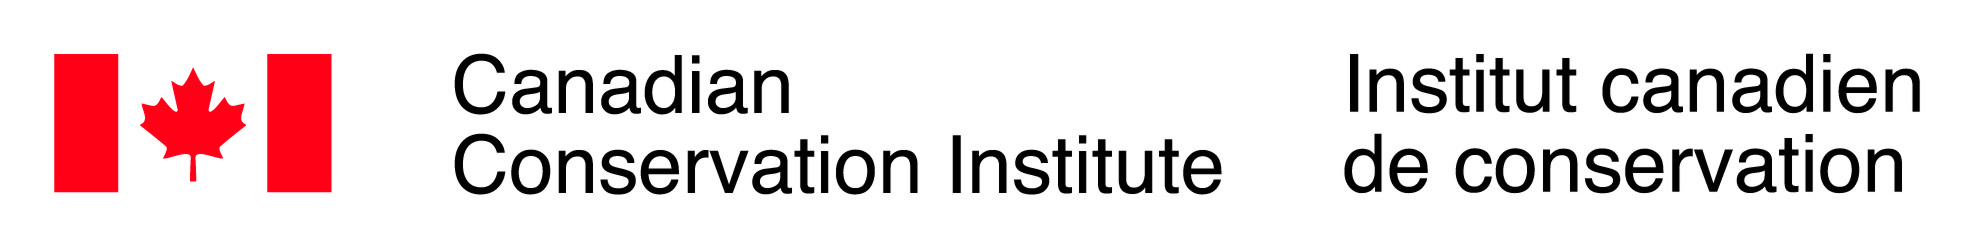 Canadian Conservation Institute logo